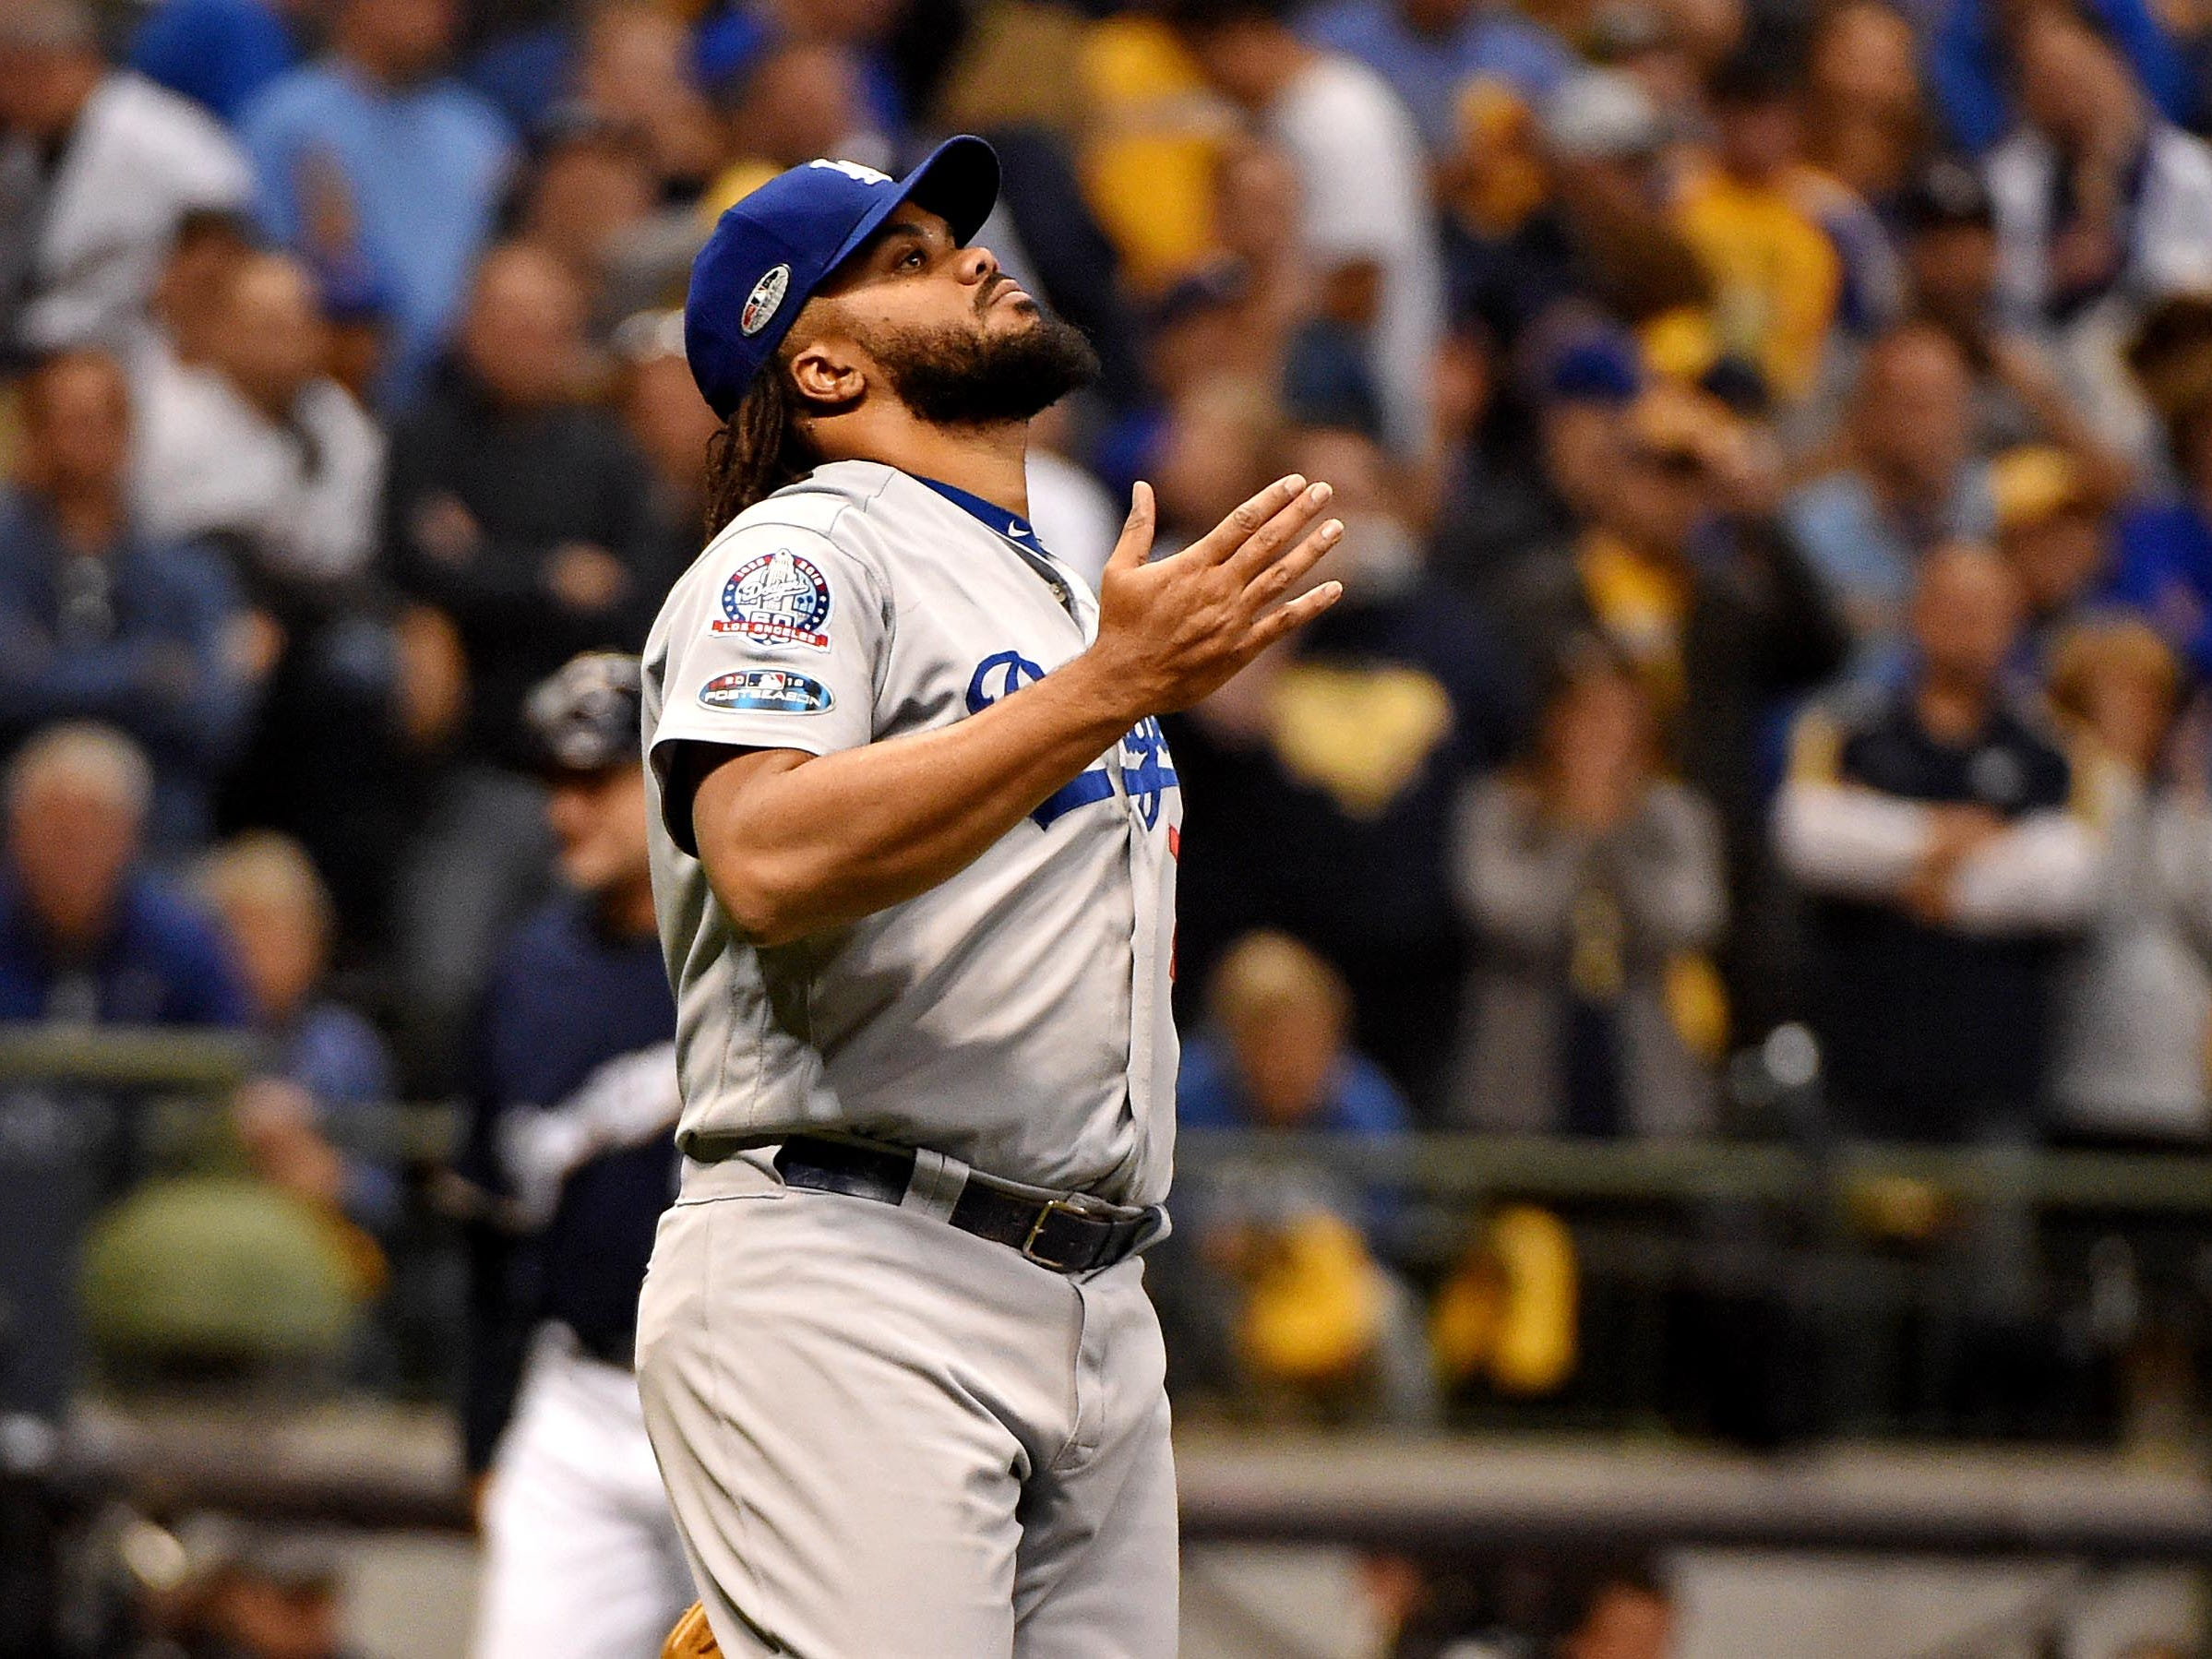 NLCS Game 2: Dodgers closer Kenley Jansen finishes of f the Brewers to even the series.